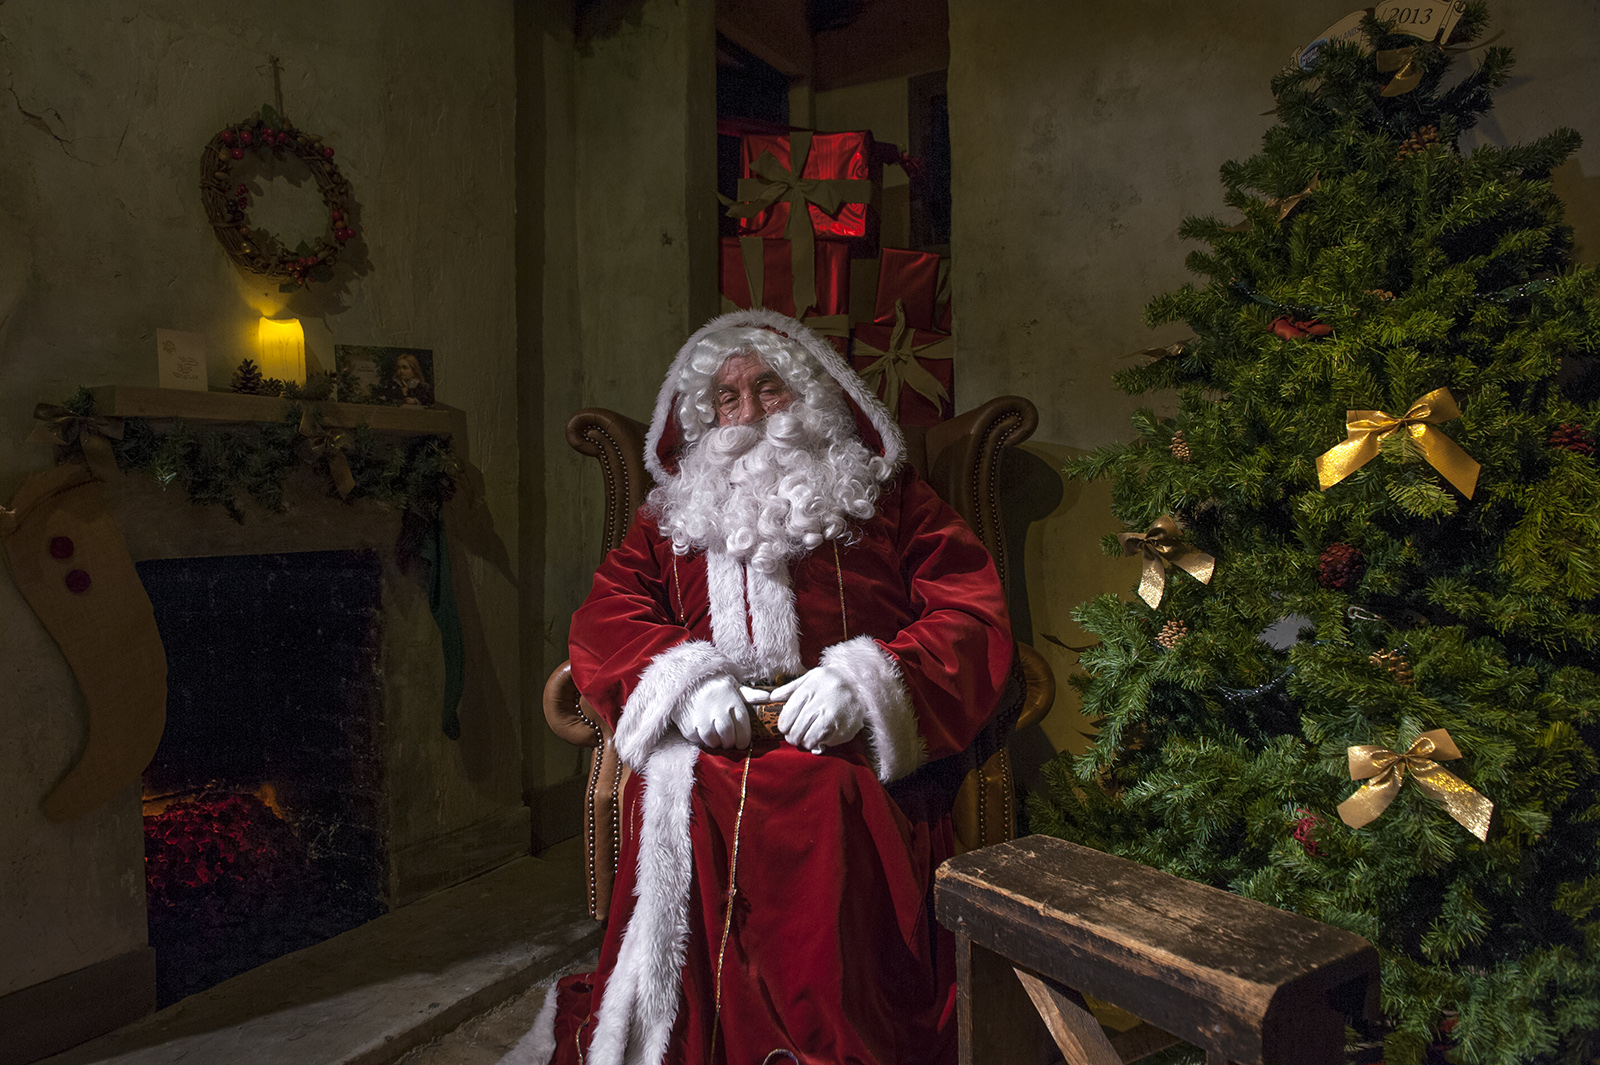 Santa sitting on a chair next to a Christmas tree and fireplace